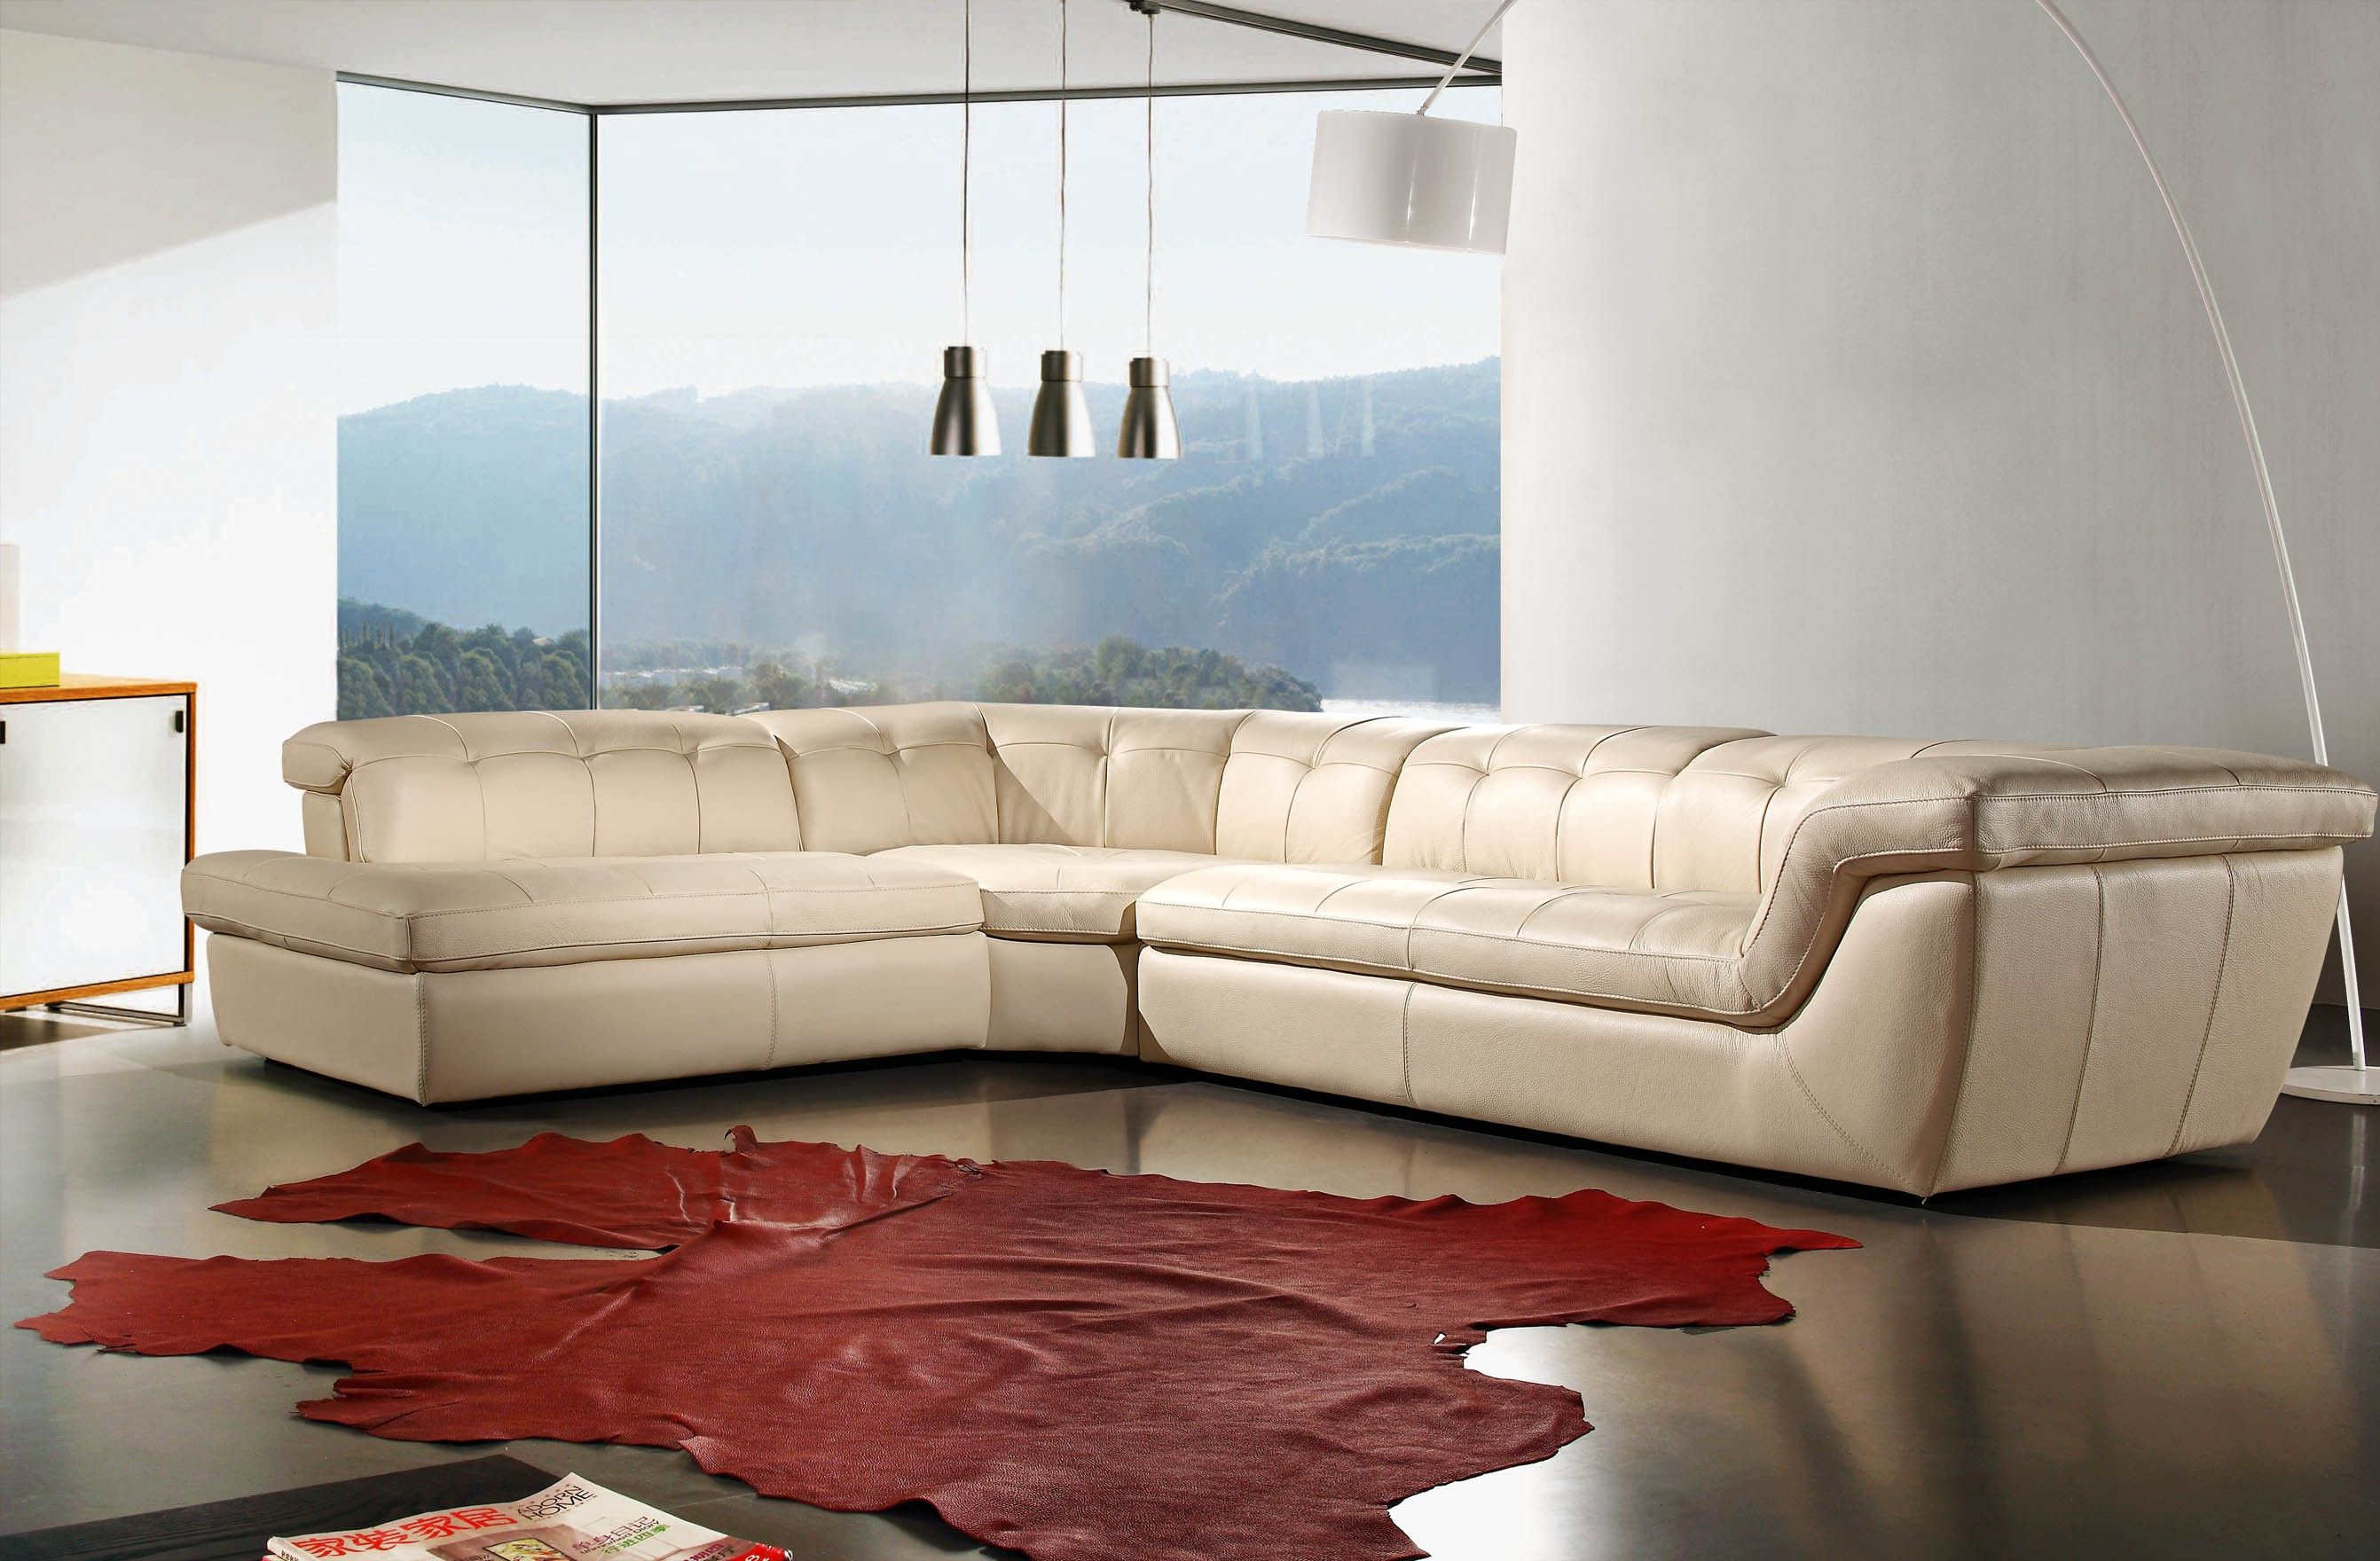 Living Room Design With Sectional Sofa Amazing American Contemporary Sofa 10 Тыс Изображений Найдено В Яндекс Design Decoration